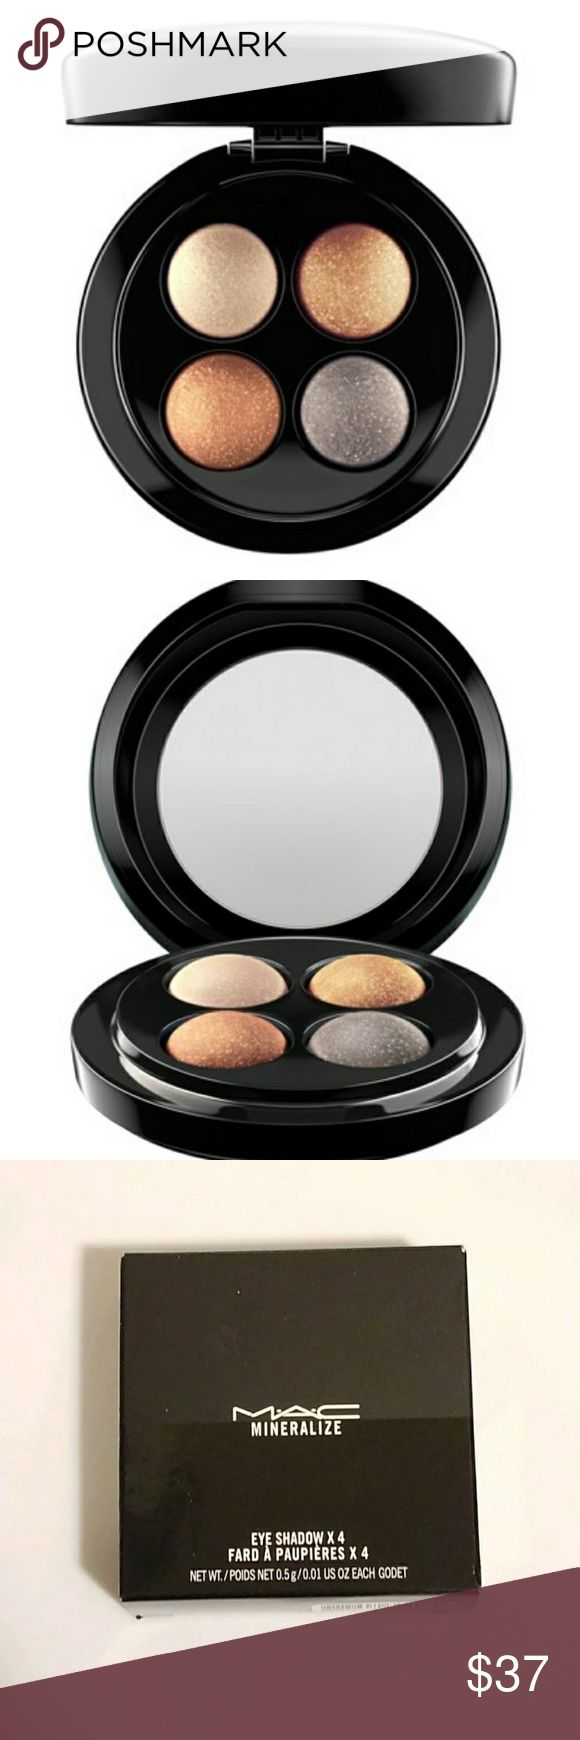 MAC Cosmetics MineralizeEye Shadow Palette A powder formula of refined baked mineral eye shadows that provides ultra-lightweight pigment.  - Included 4 coordinated colors - Dermatologist tested - Ophthalmologist tested - Non-acnegenic - Safe for contact lens wearers - Can be used wet or dry - Features a lightweight formula - Features a 77-Mineral Complex - Instantly nourishing - 0.5 g / 0.01 US oz each MAC Cosmetics Makeup Eyeshadow